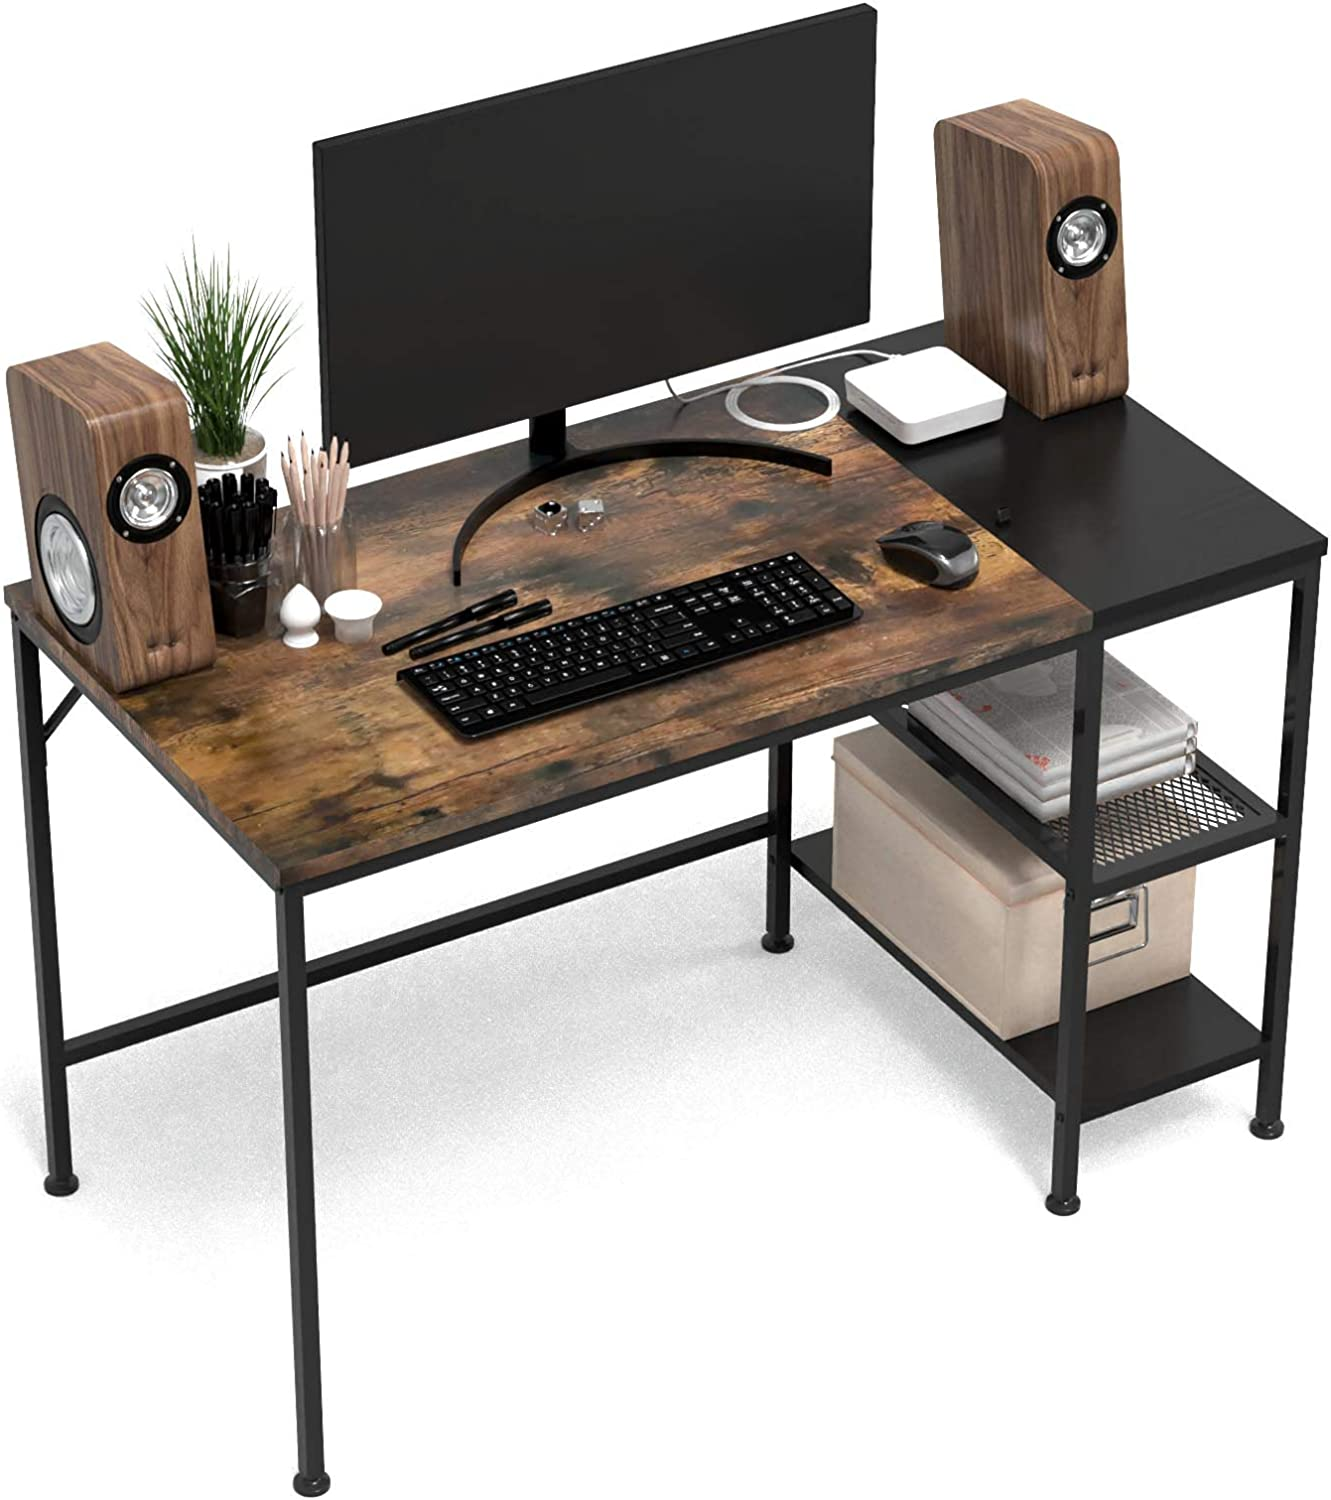 HOMIDEC Writing Computer Desk with Storage Shelves, Office Work Desk for Small Spaces, Writing Study, Industry Modern Table for Bedroom, Home, Office(47.2x23.6x29.5 inch)